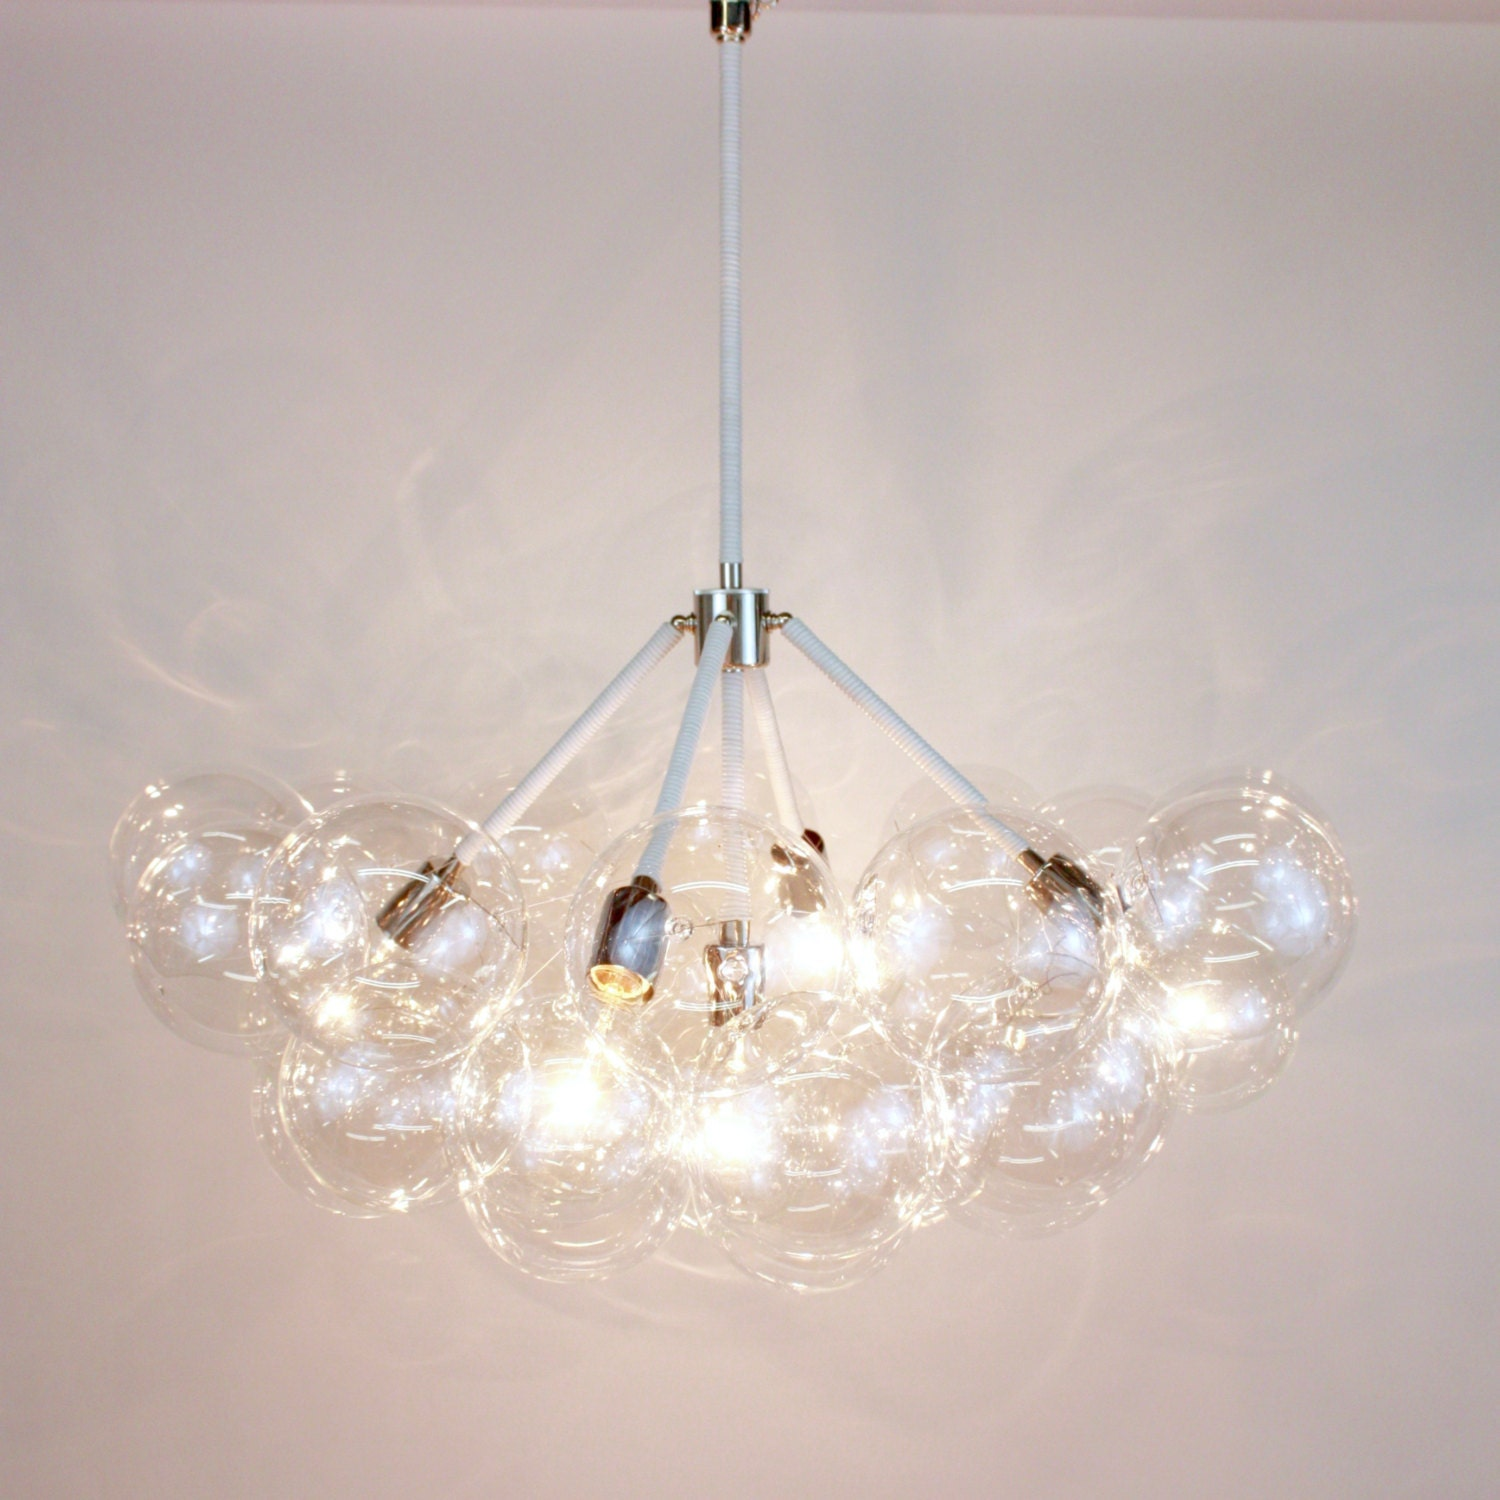 The five branch bubble chandelier 32 diameter by thelightfactory - Chandelier a 5 branches ...